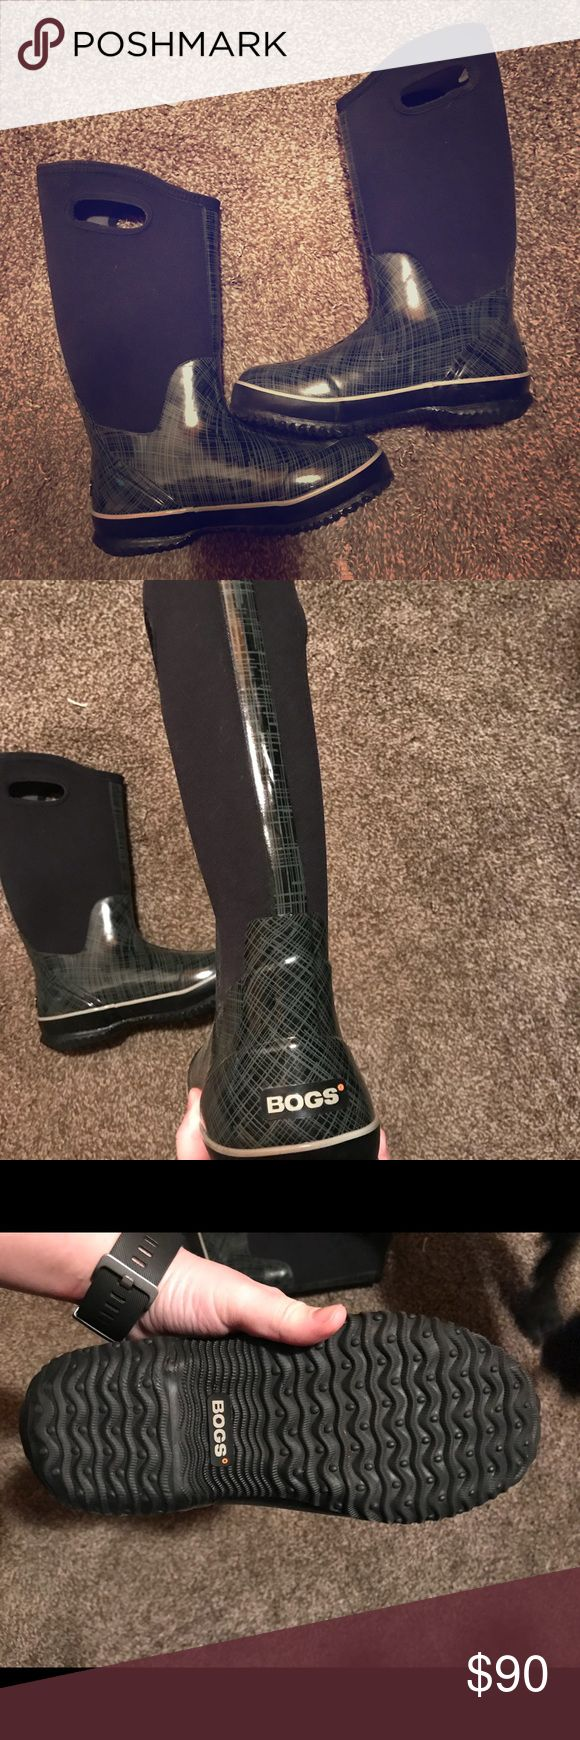 BOGS INSULATED BOOTS! ** perfect condition! Worn 1 time for a Colorado ski trip! PERFECT CONDITION   • NO flaws  •NO dirt  • NO SMELLS   100% perfect boots for cold weather, ice, snow, or rain!  * please NO LOW offers! Bogs Shoes Winter & Rain Boots